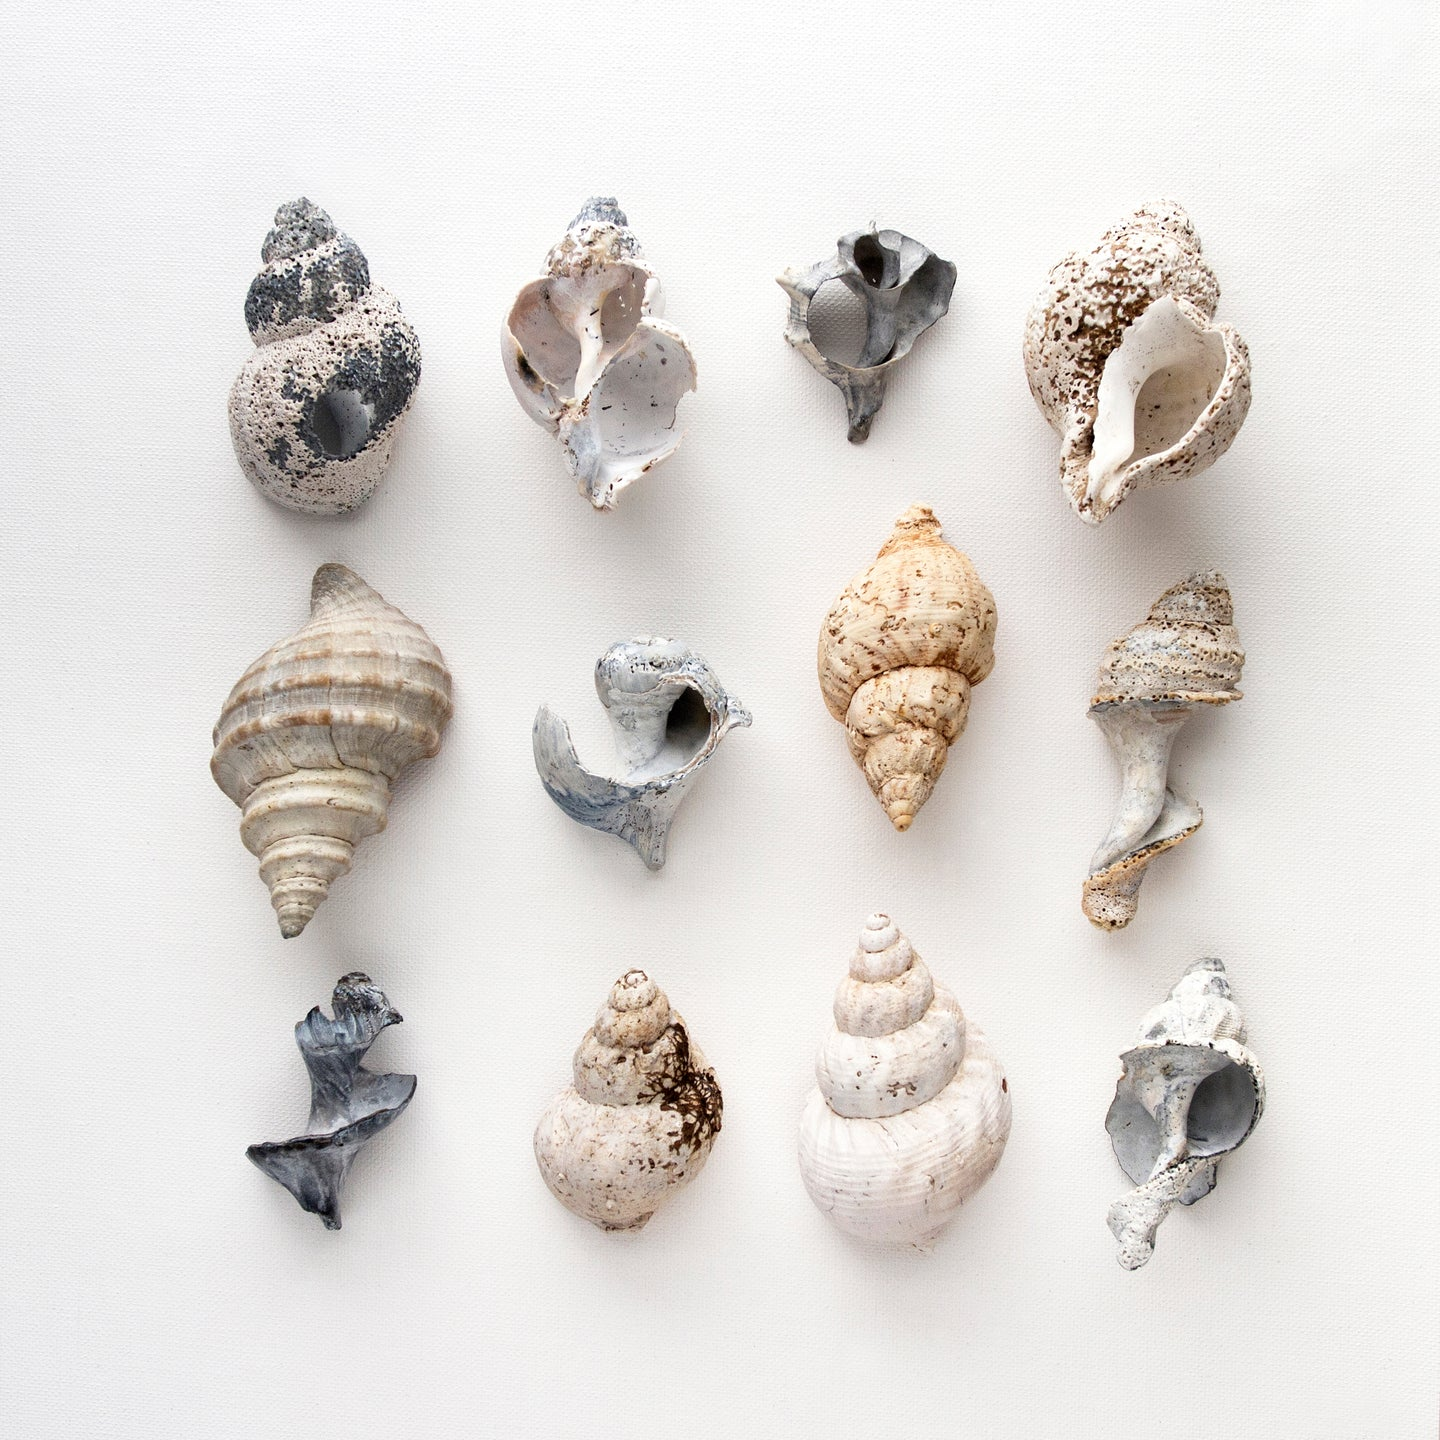 buccins, collection de buccins, photographie buccins, whelks, whelks photography, whelks collection, coastal art, art maritime, À Marée Basse